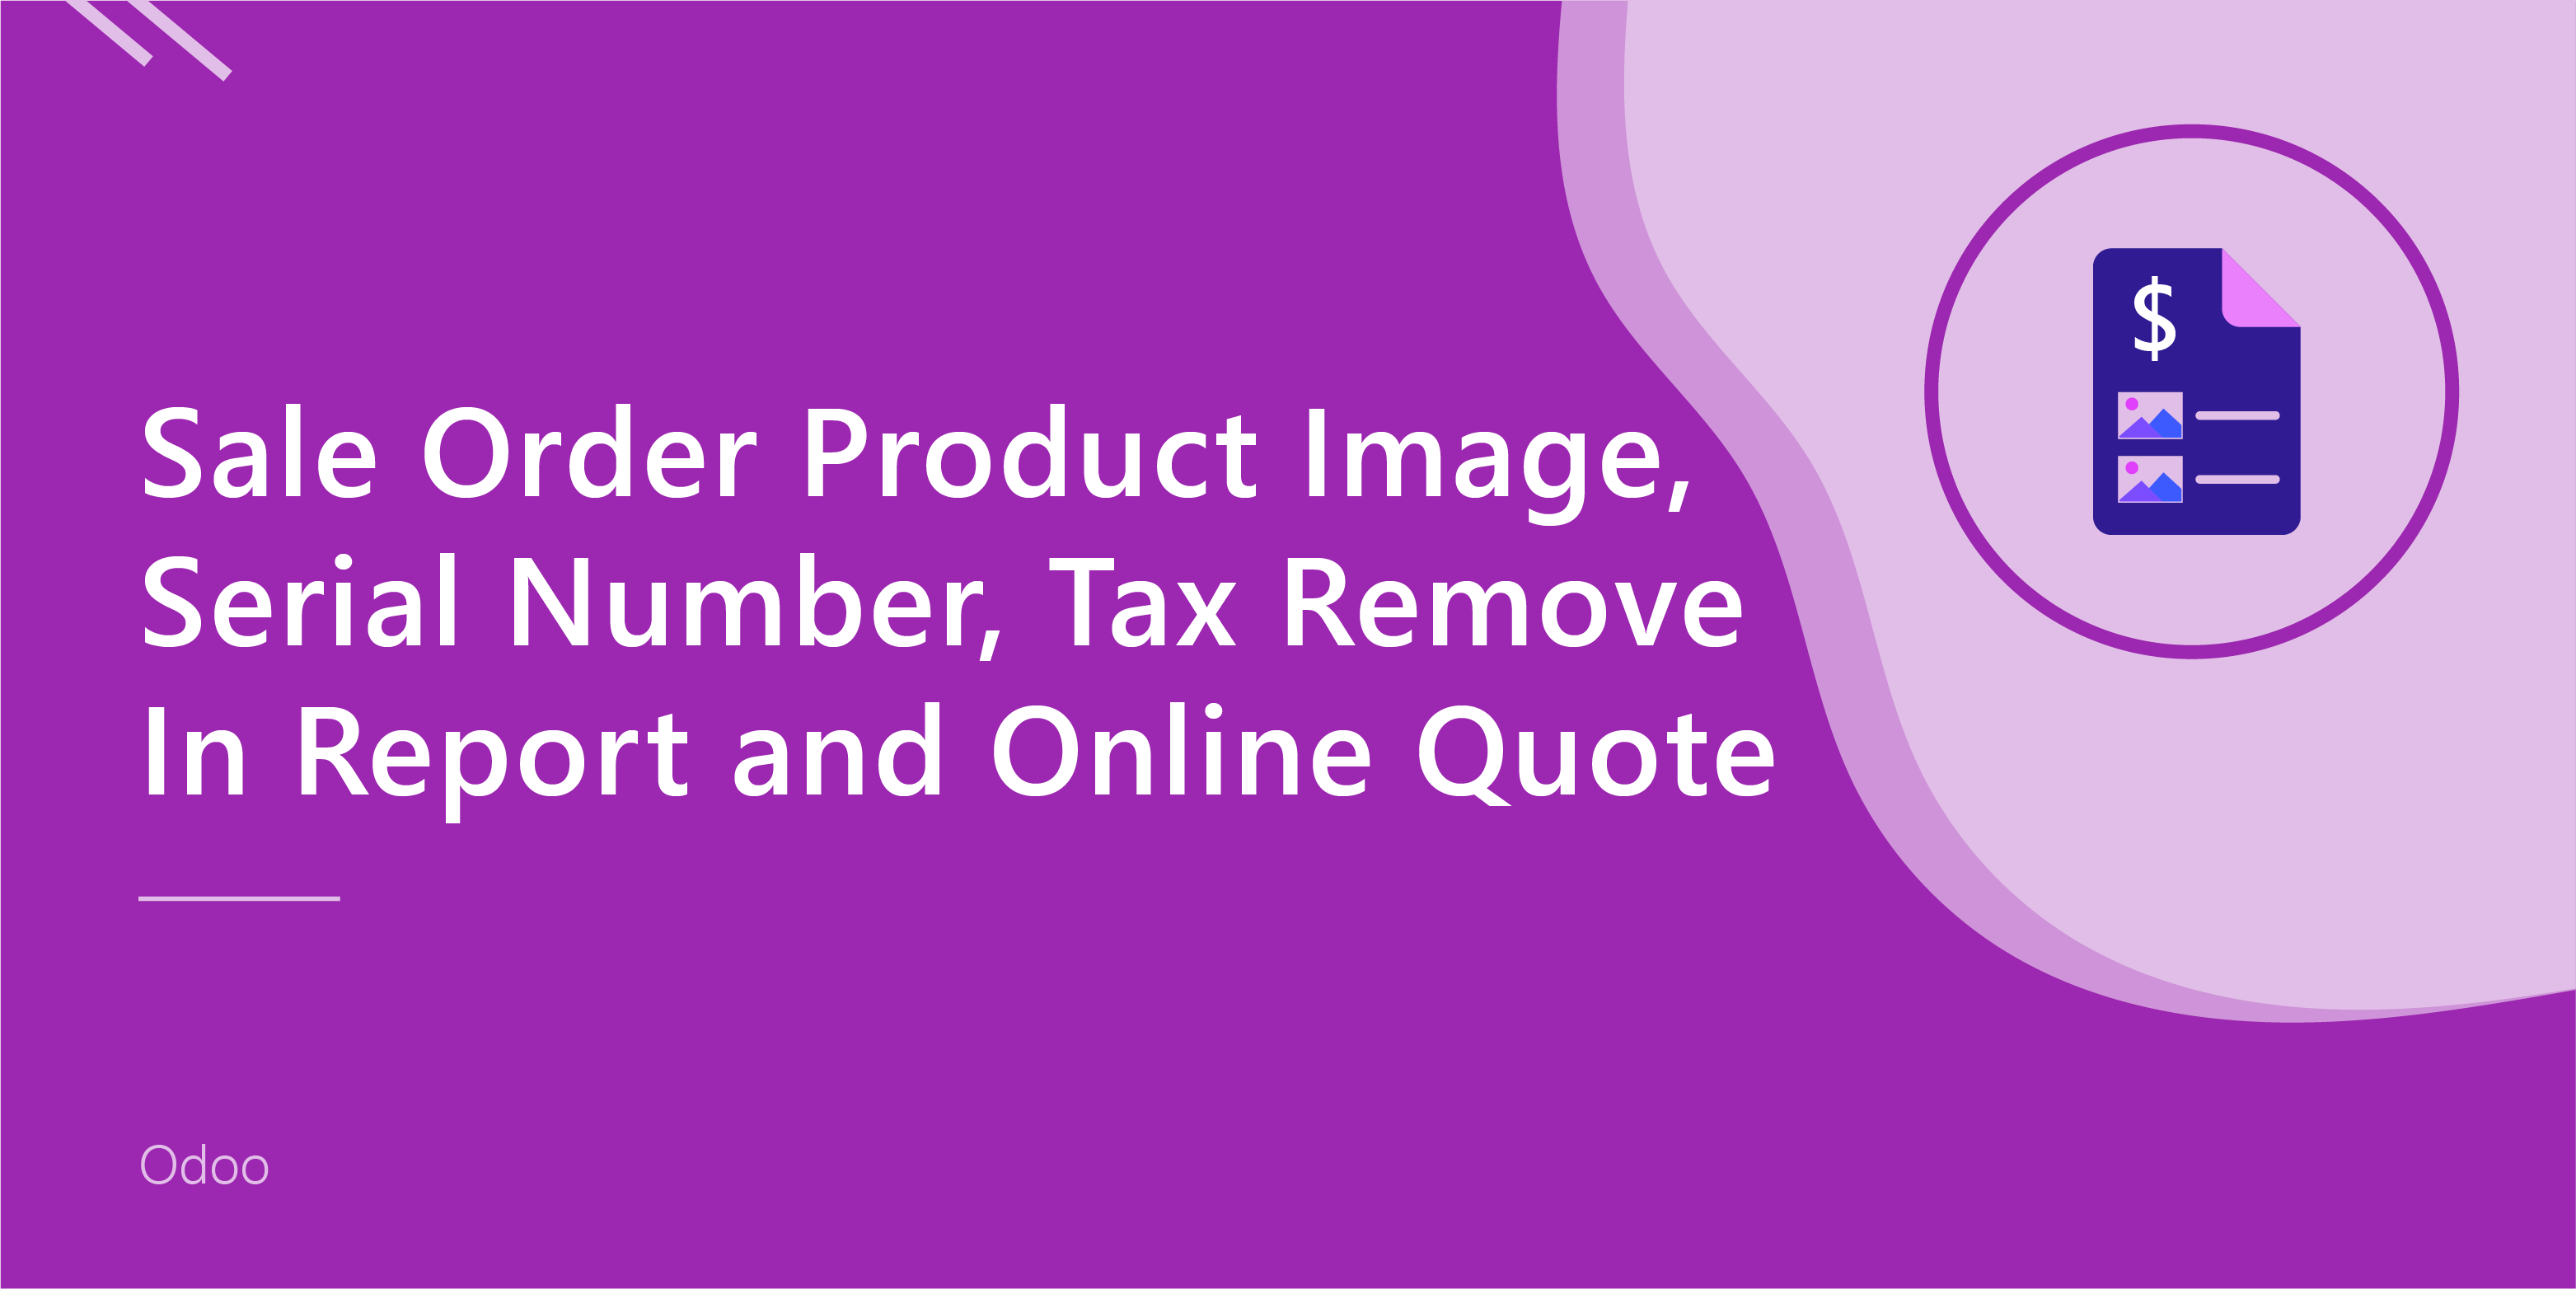 Sale Order Product Image, Serial Number, Tax Remove In Report and Online Quote